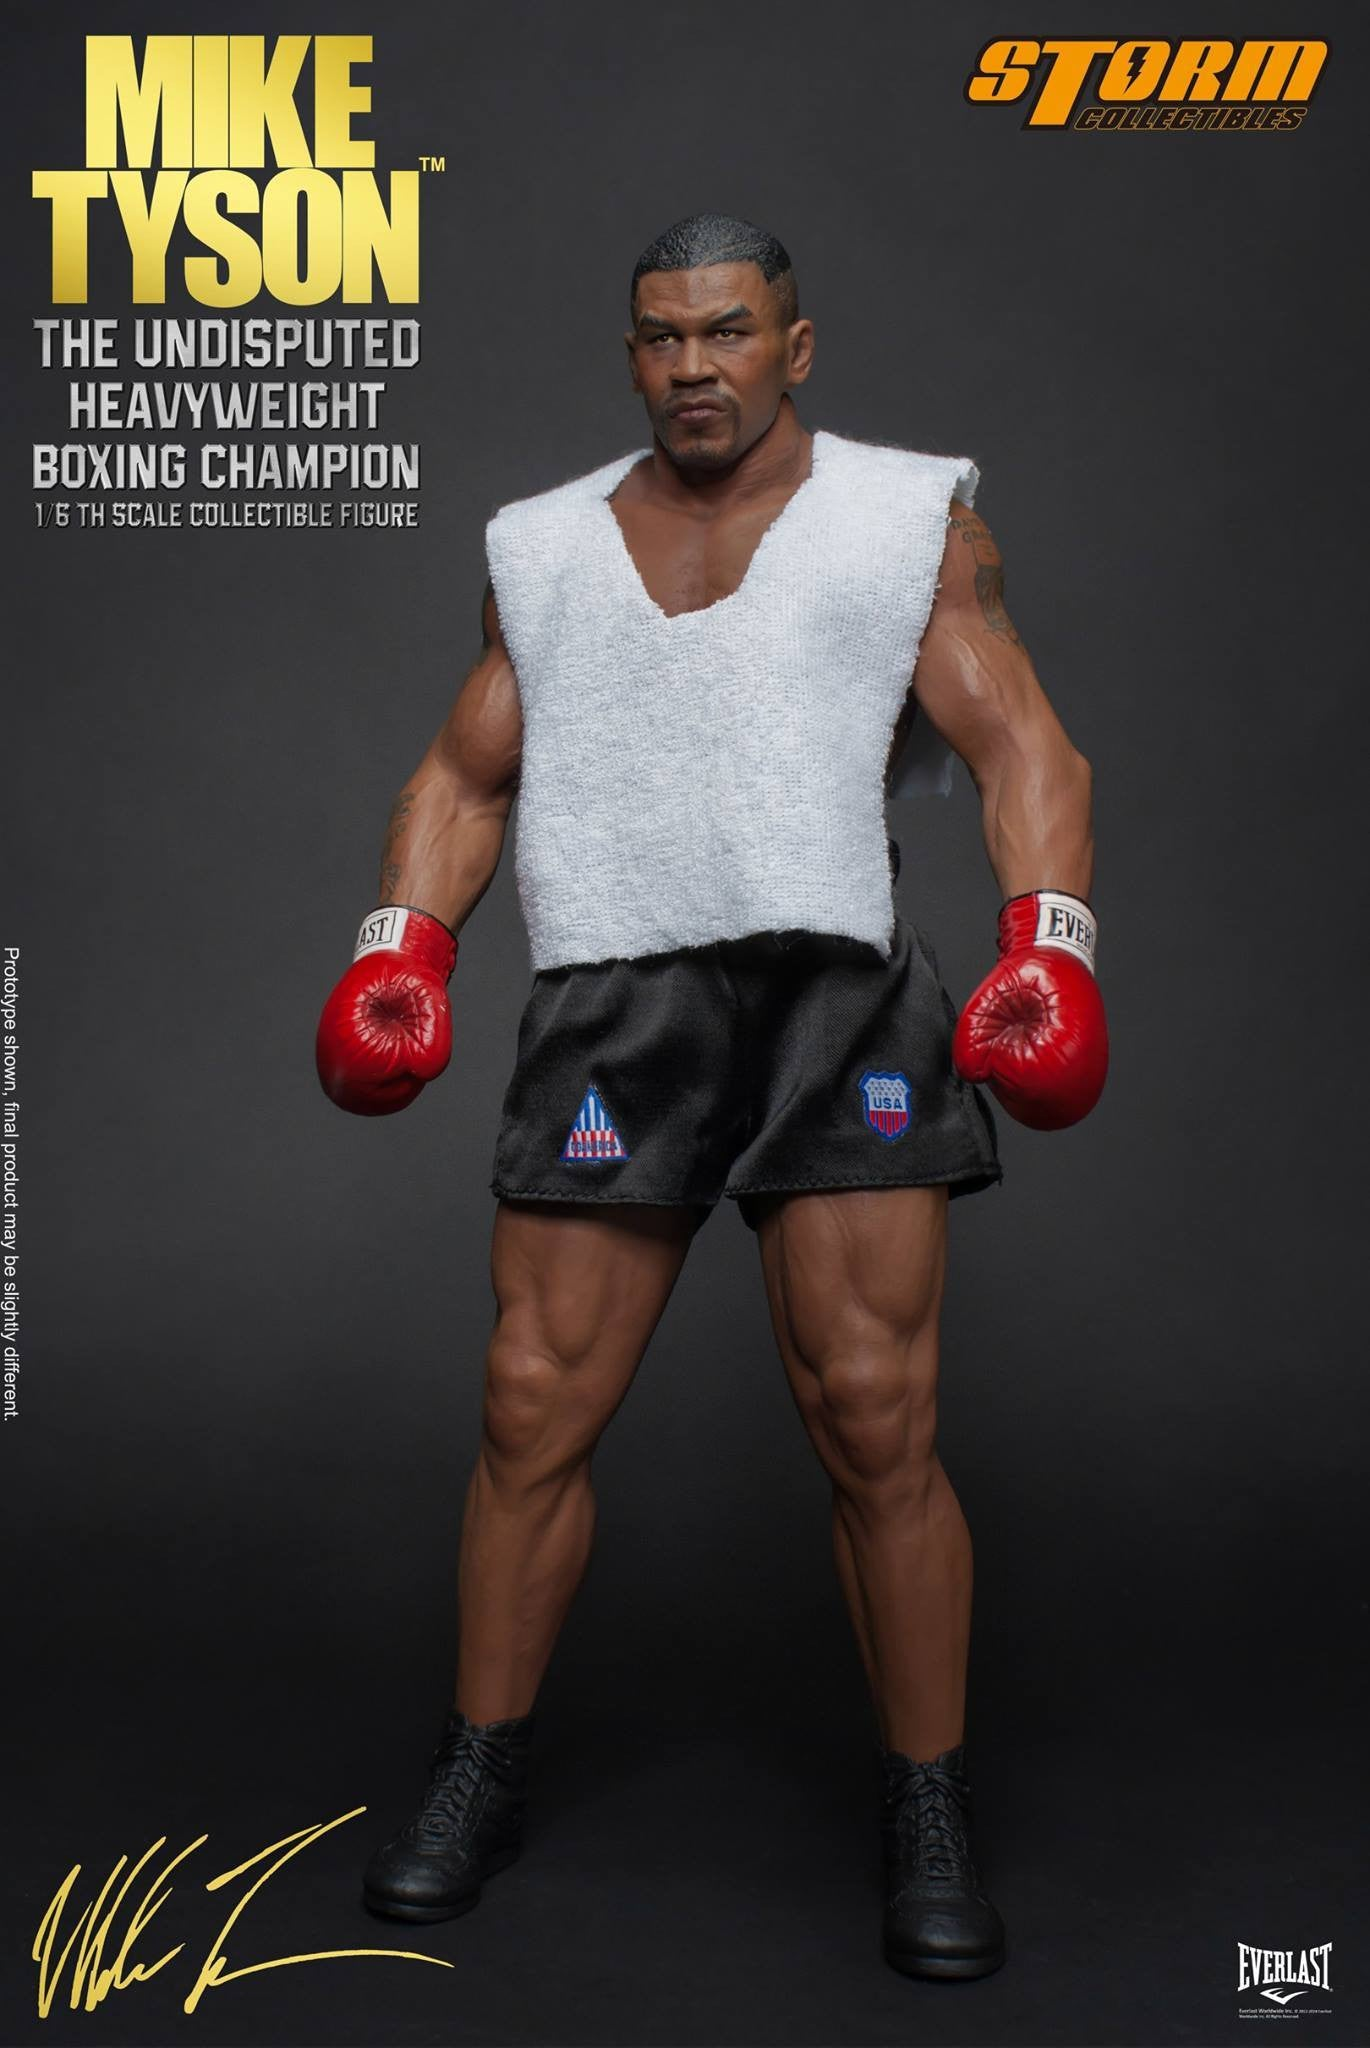 "Storm Collectibles - 1:6 Scale Collectible Figure - Mike Tyson ""The Undisputed Heavyweight Boxing Champion"""